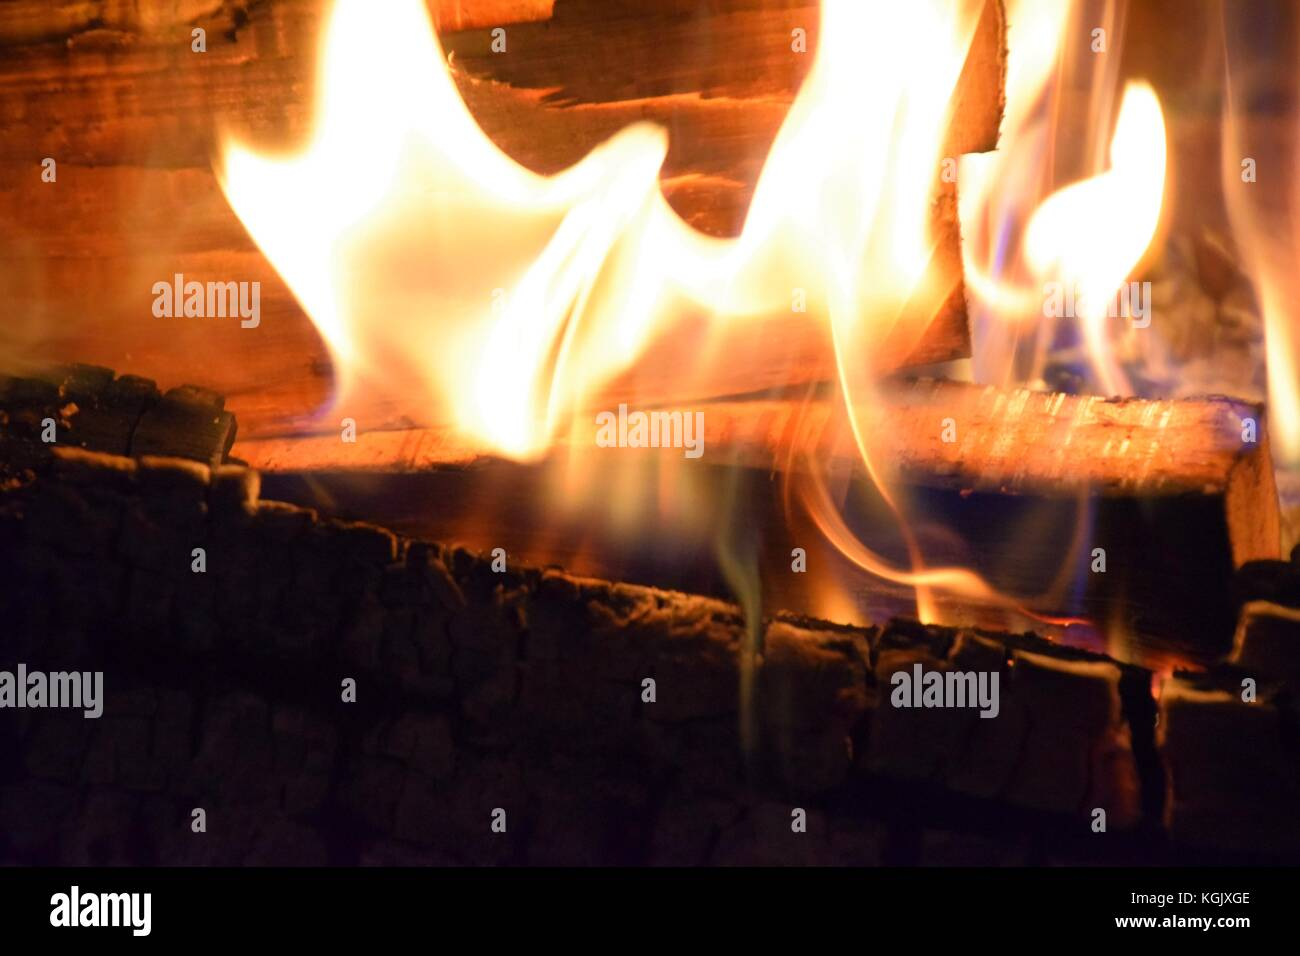 burning wood in a tiled stove with hot blazing flames - Stock Image